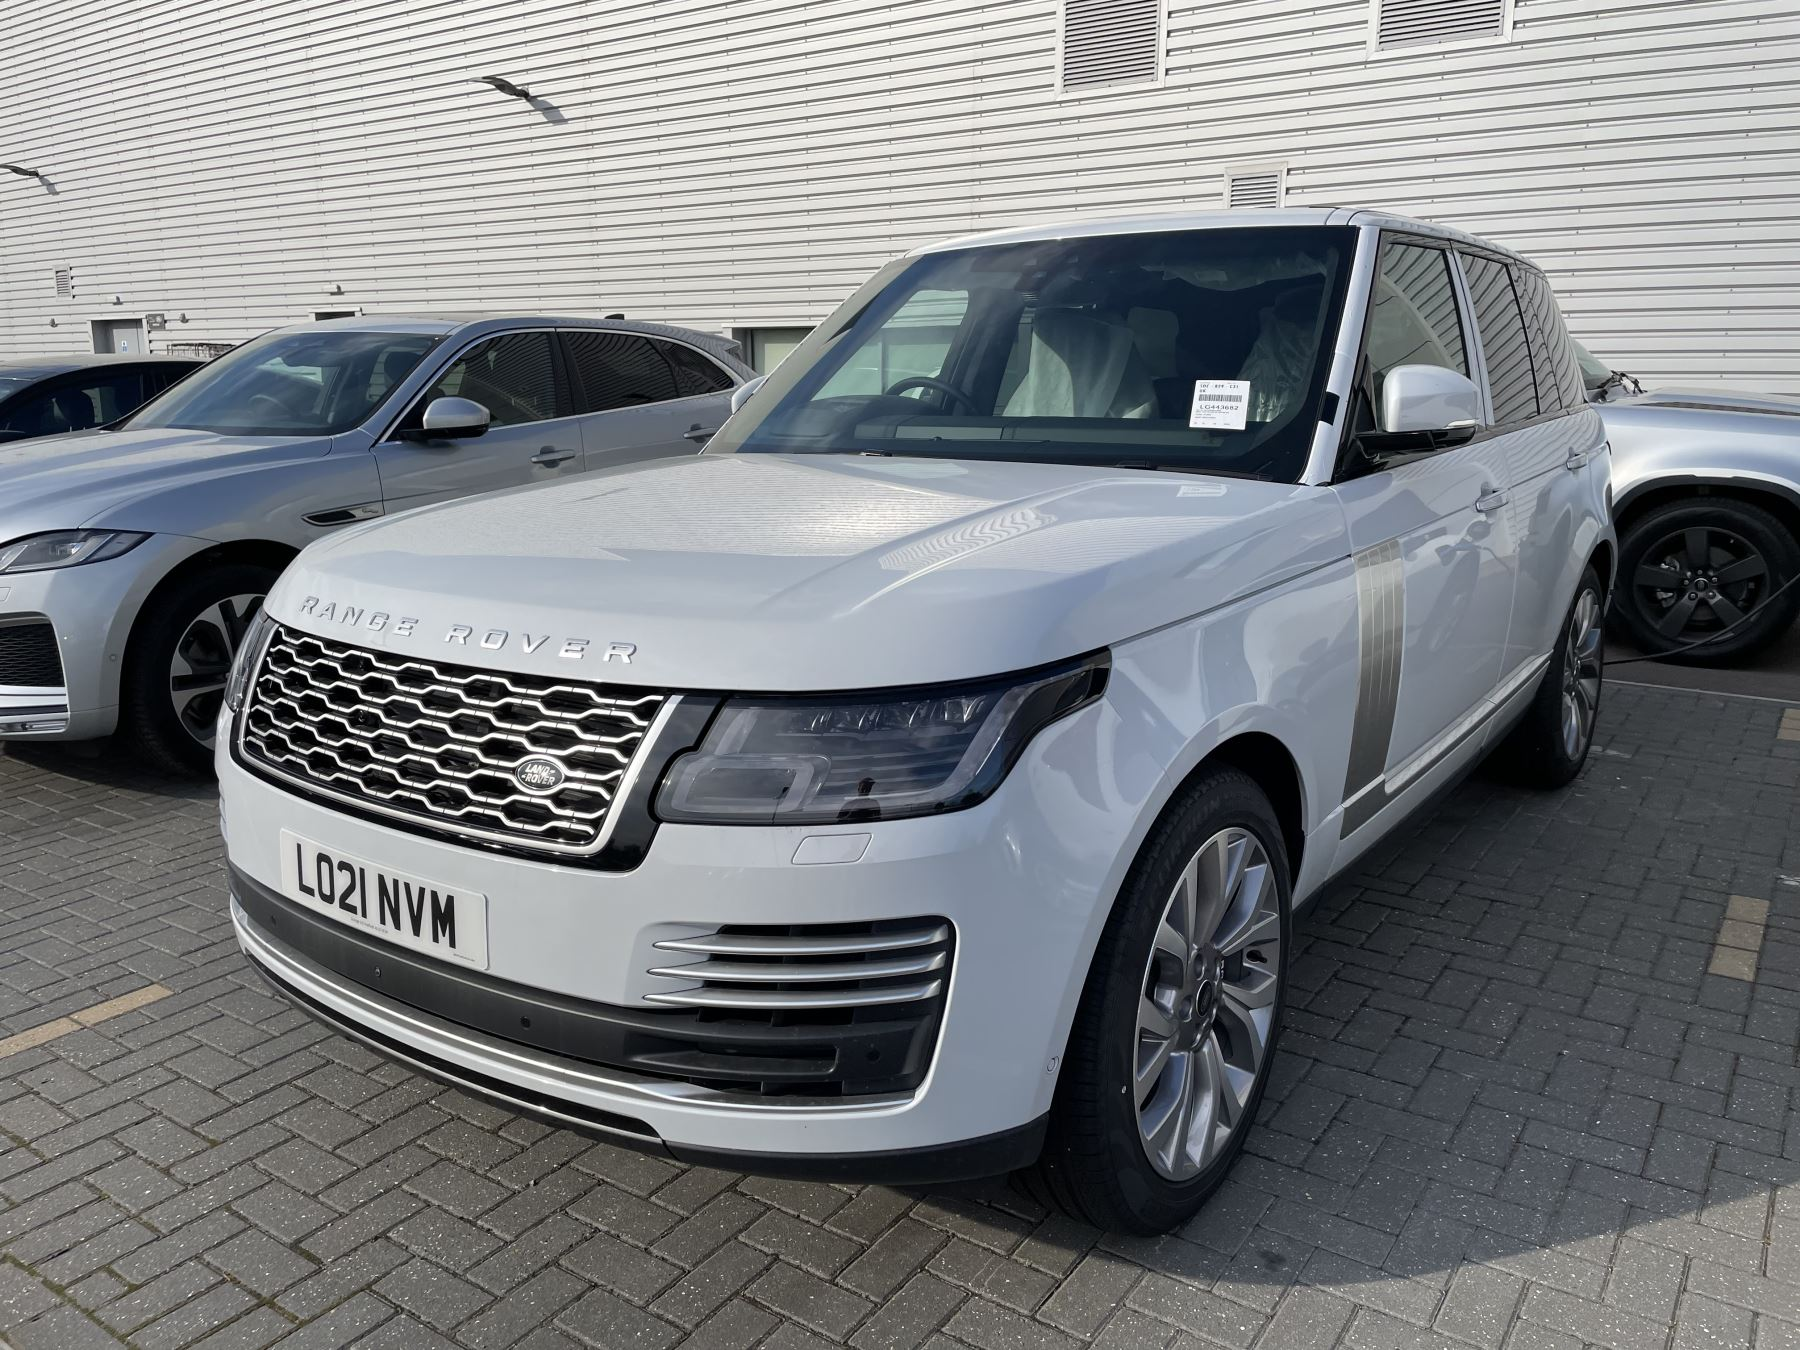 Land Rover Range Rover 3.0 D350 Autobiography 4dr Auto Head-up display, Privacy glass Diesel Automatic 5 door 4x4